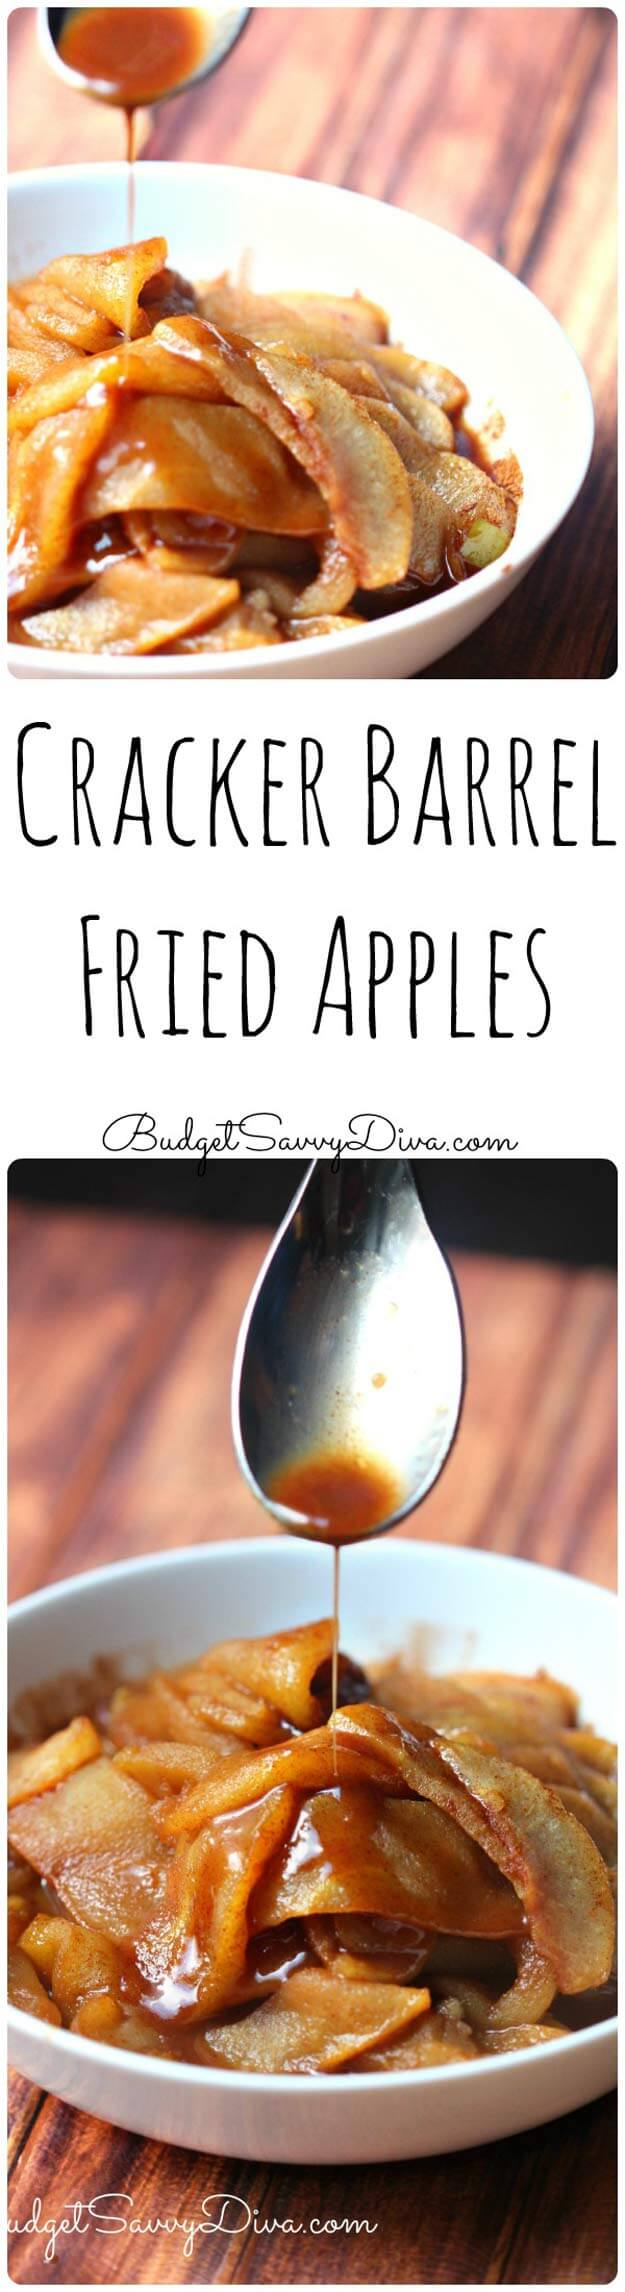 Cracker Barrel Fried Apples Recipe